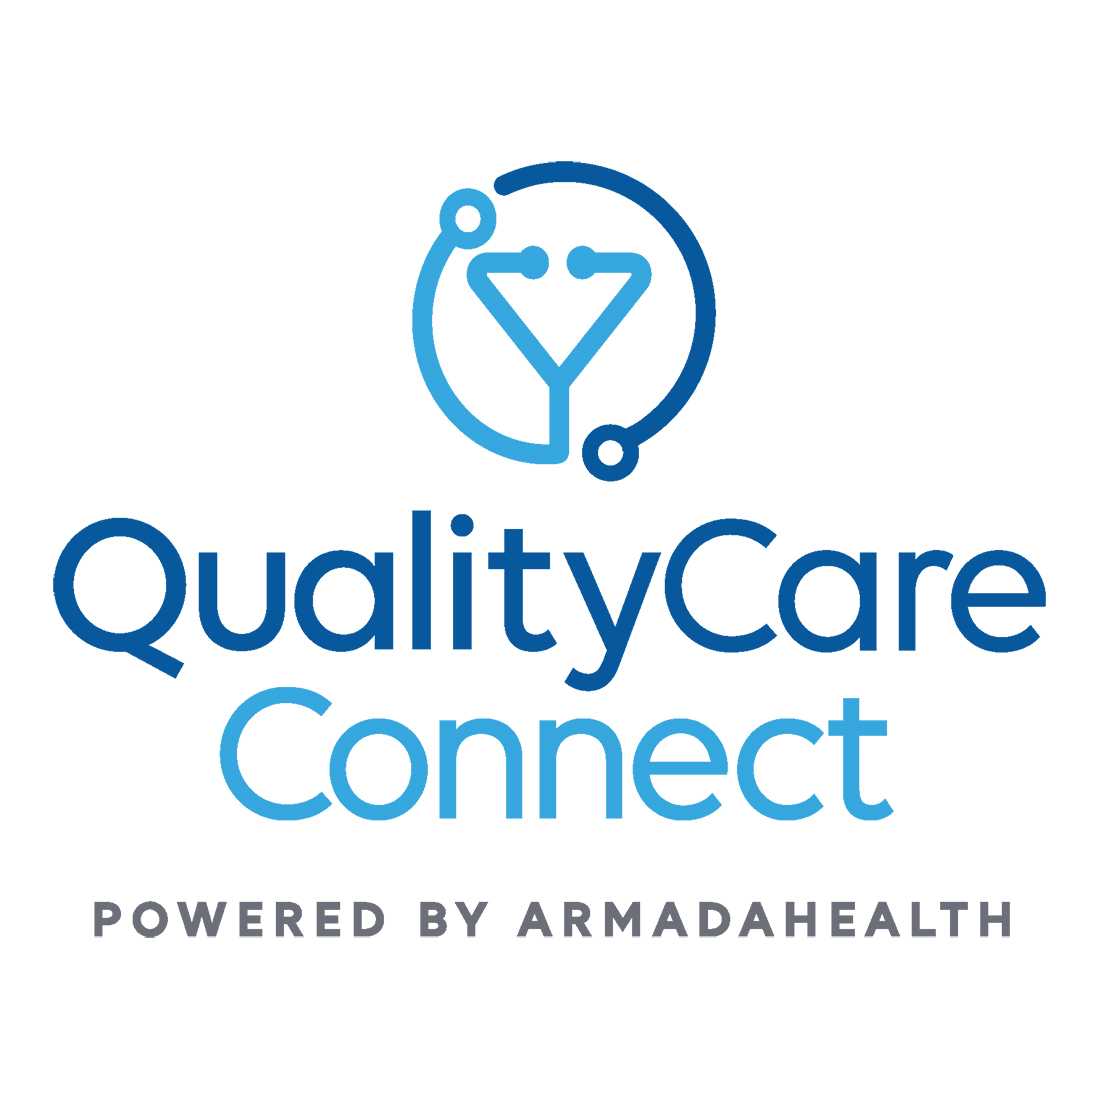 ArmadaHealth's QualityCare Connect logo